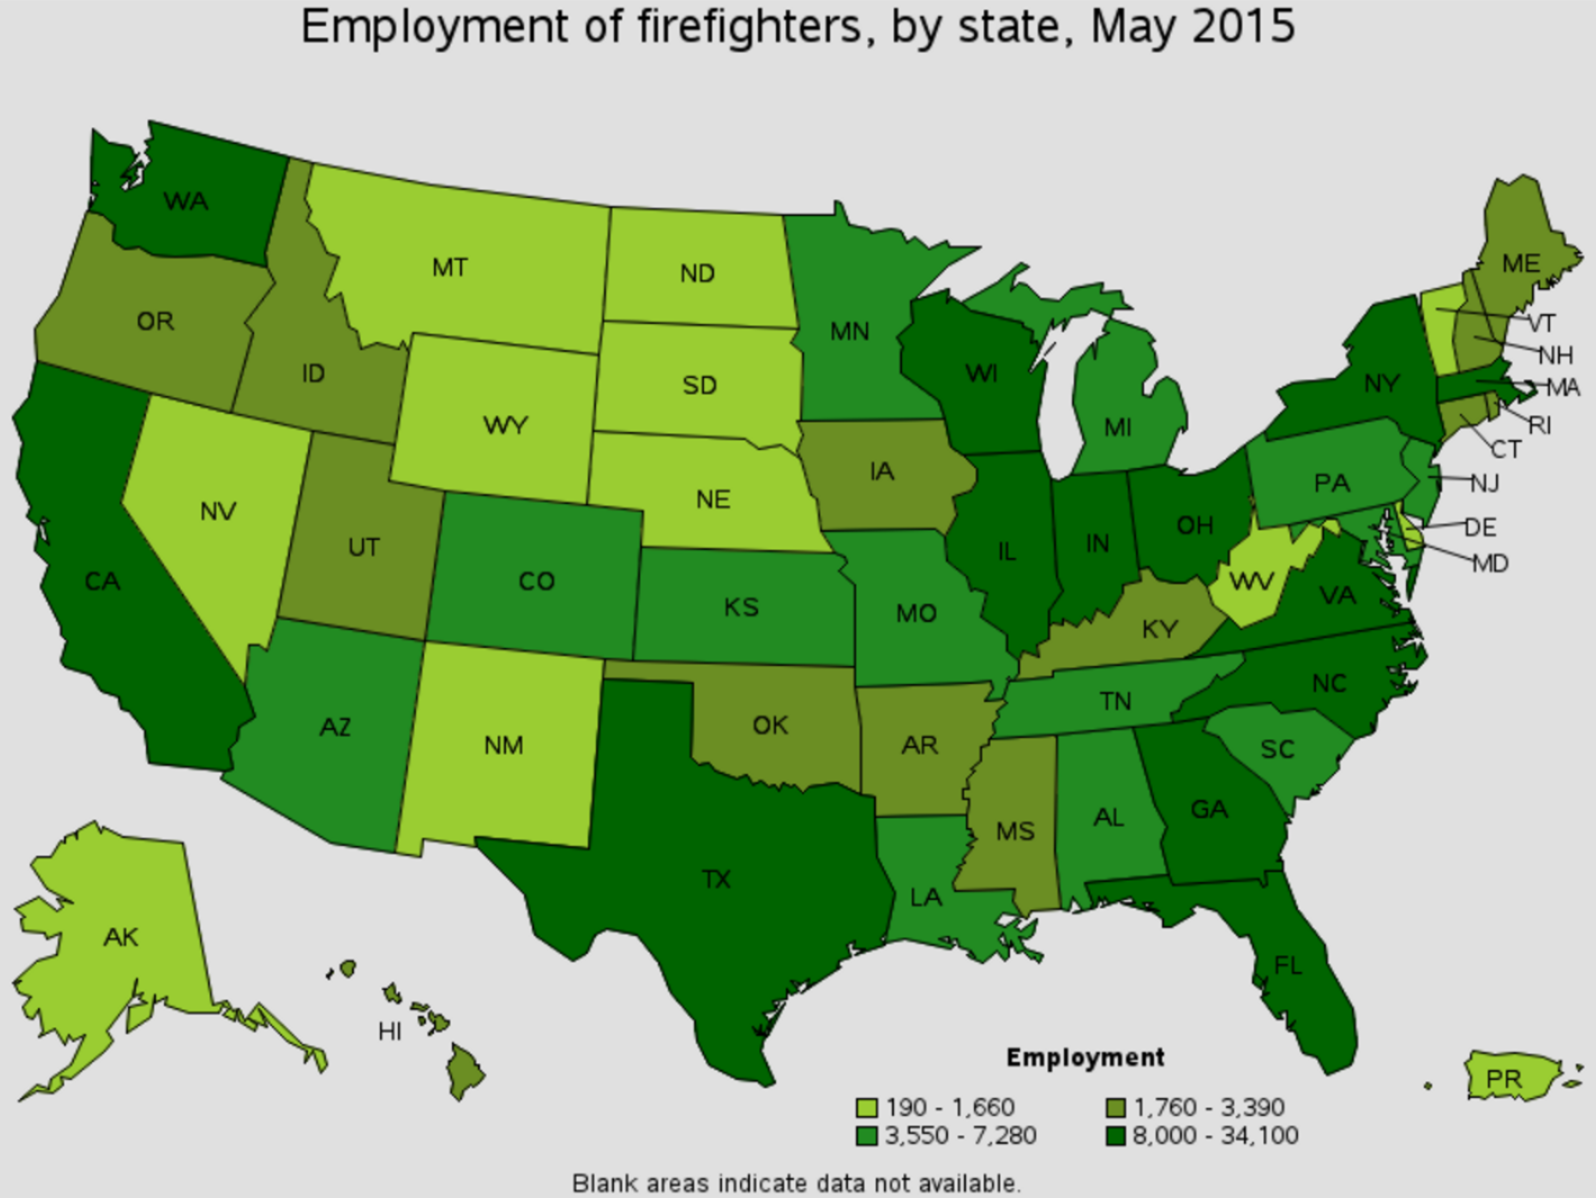 firefighter job outlook by state Peoria Arizona